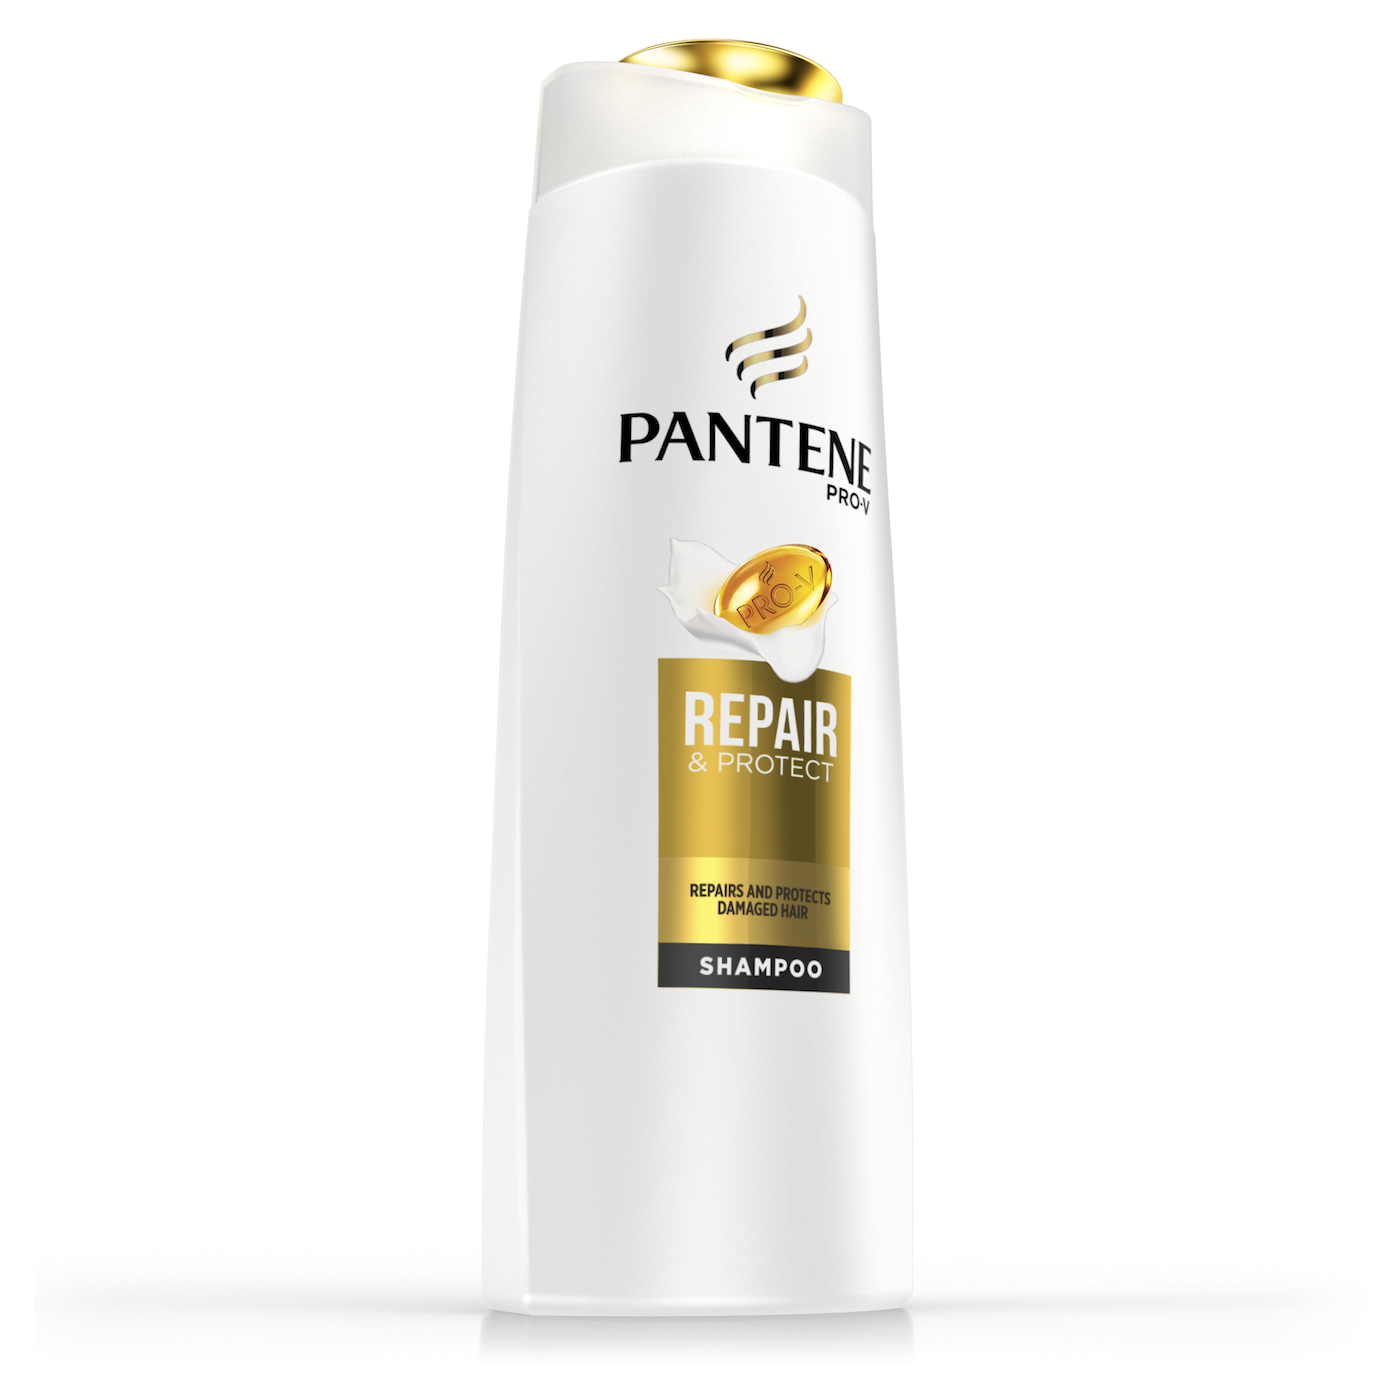 Pantene_SH_Repair & Protect_EU_UK